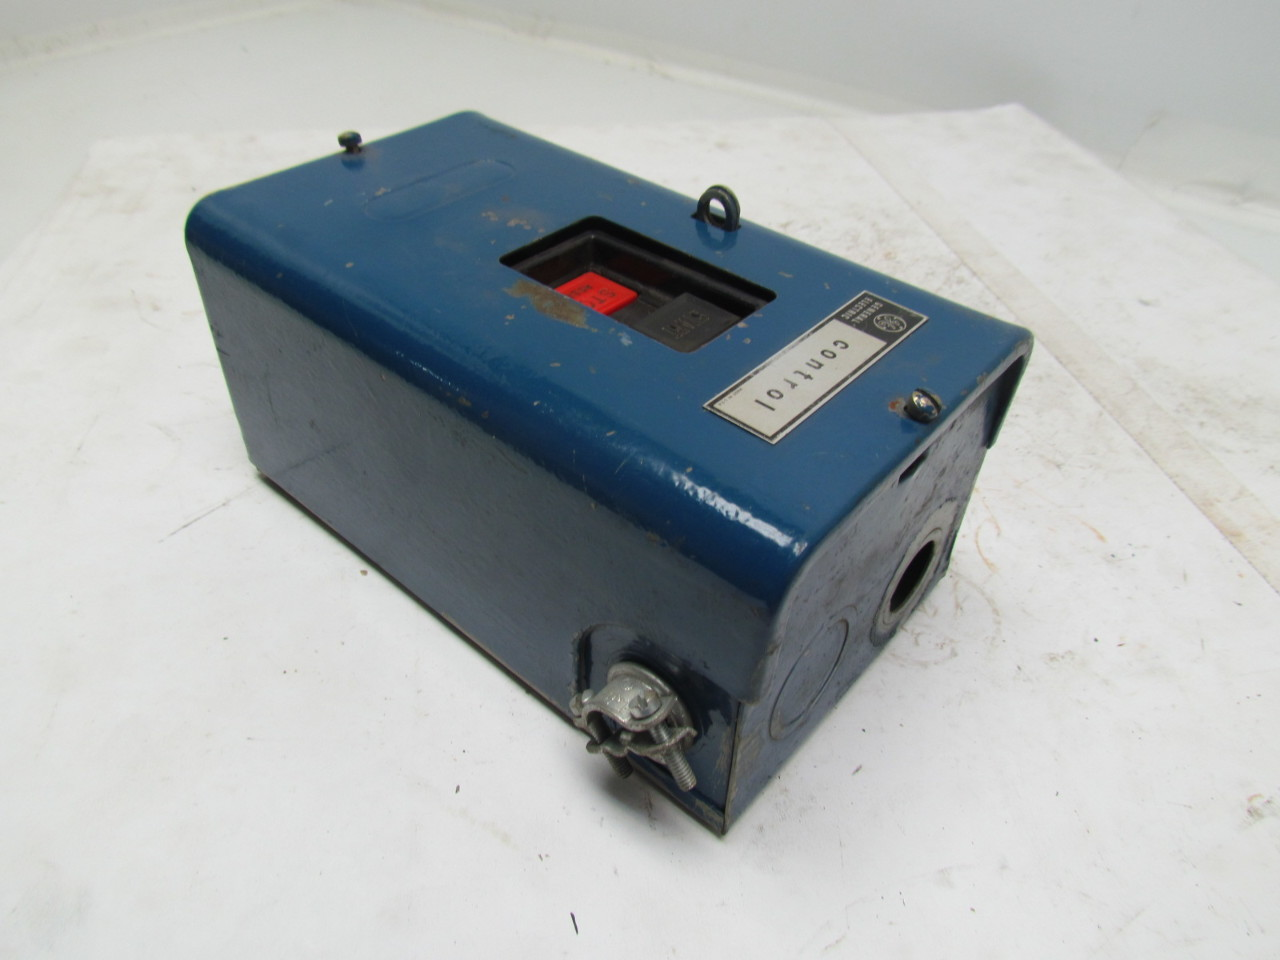 Ge general electric cr1062r2b manual motor starter w box for General electric motor starters